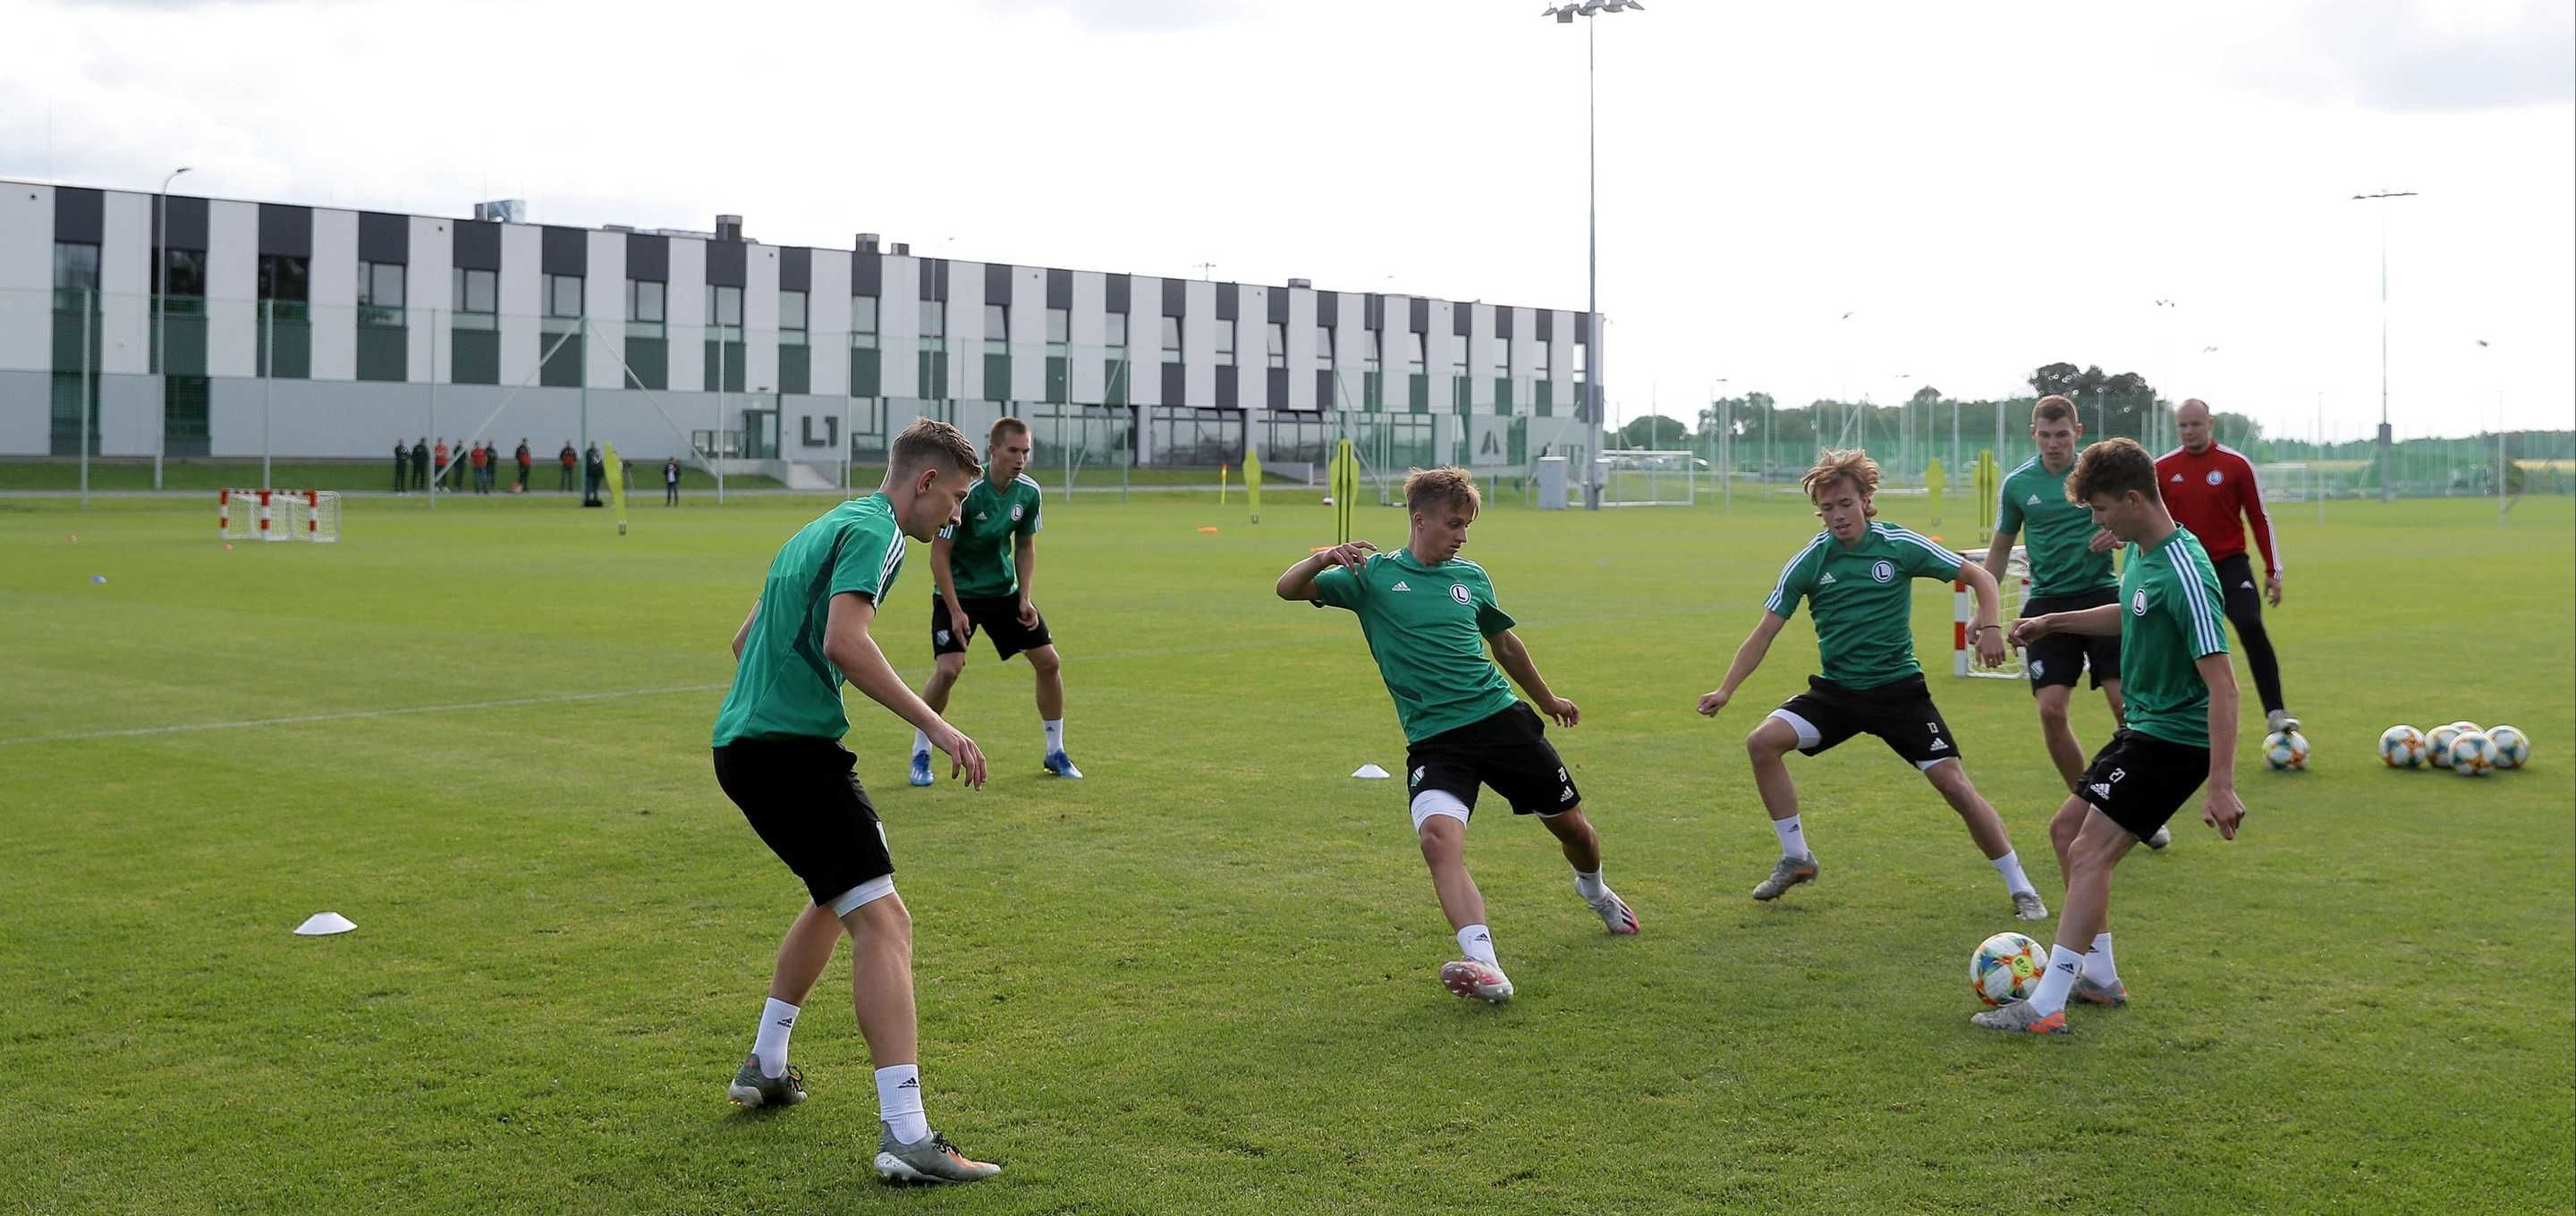 Pierwszy trening w Legia Training Center za nami!